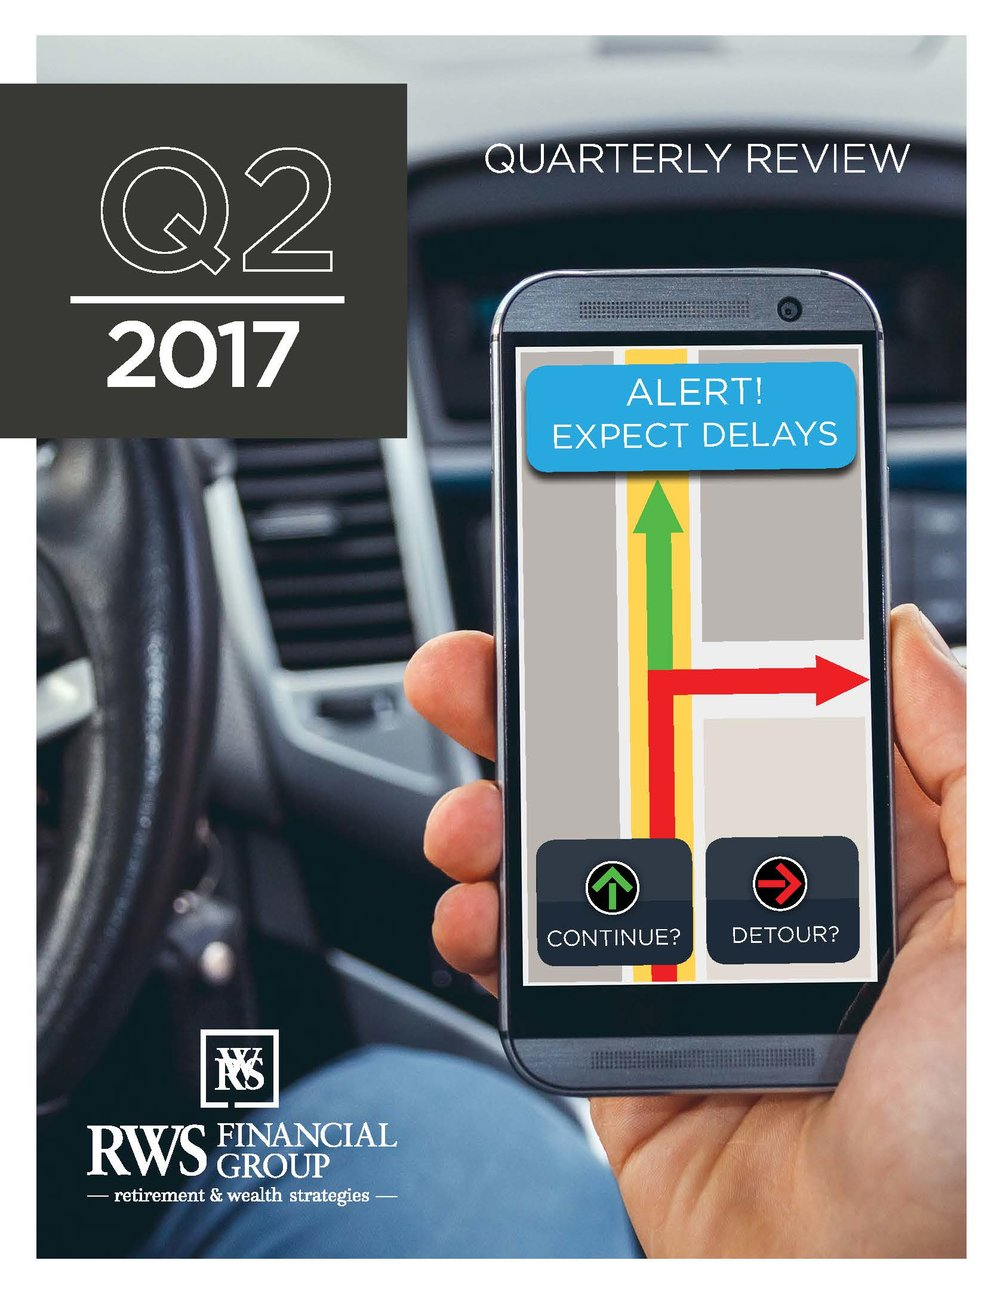 RWS FG 2017 Q2 Newsletter - Global equity markets ended the second quarter of 2017 higher, building on their first-quarter gains.  Review our 2017 Q2 newsletter for a full market update - Click Here!